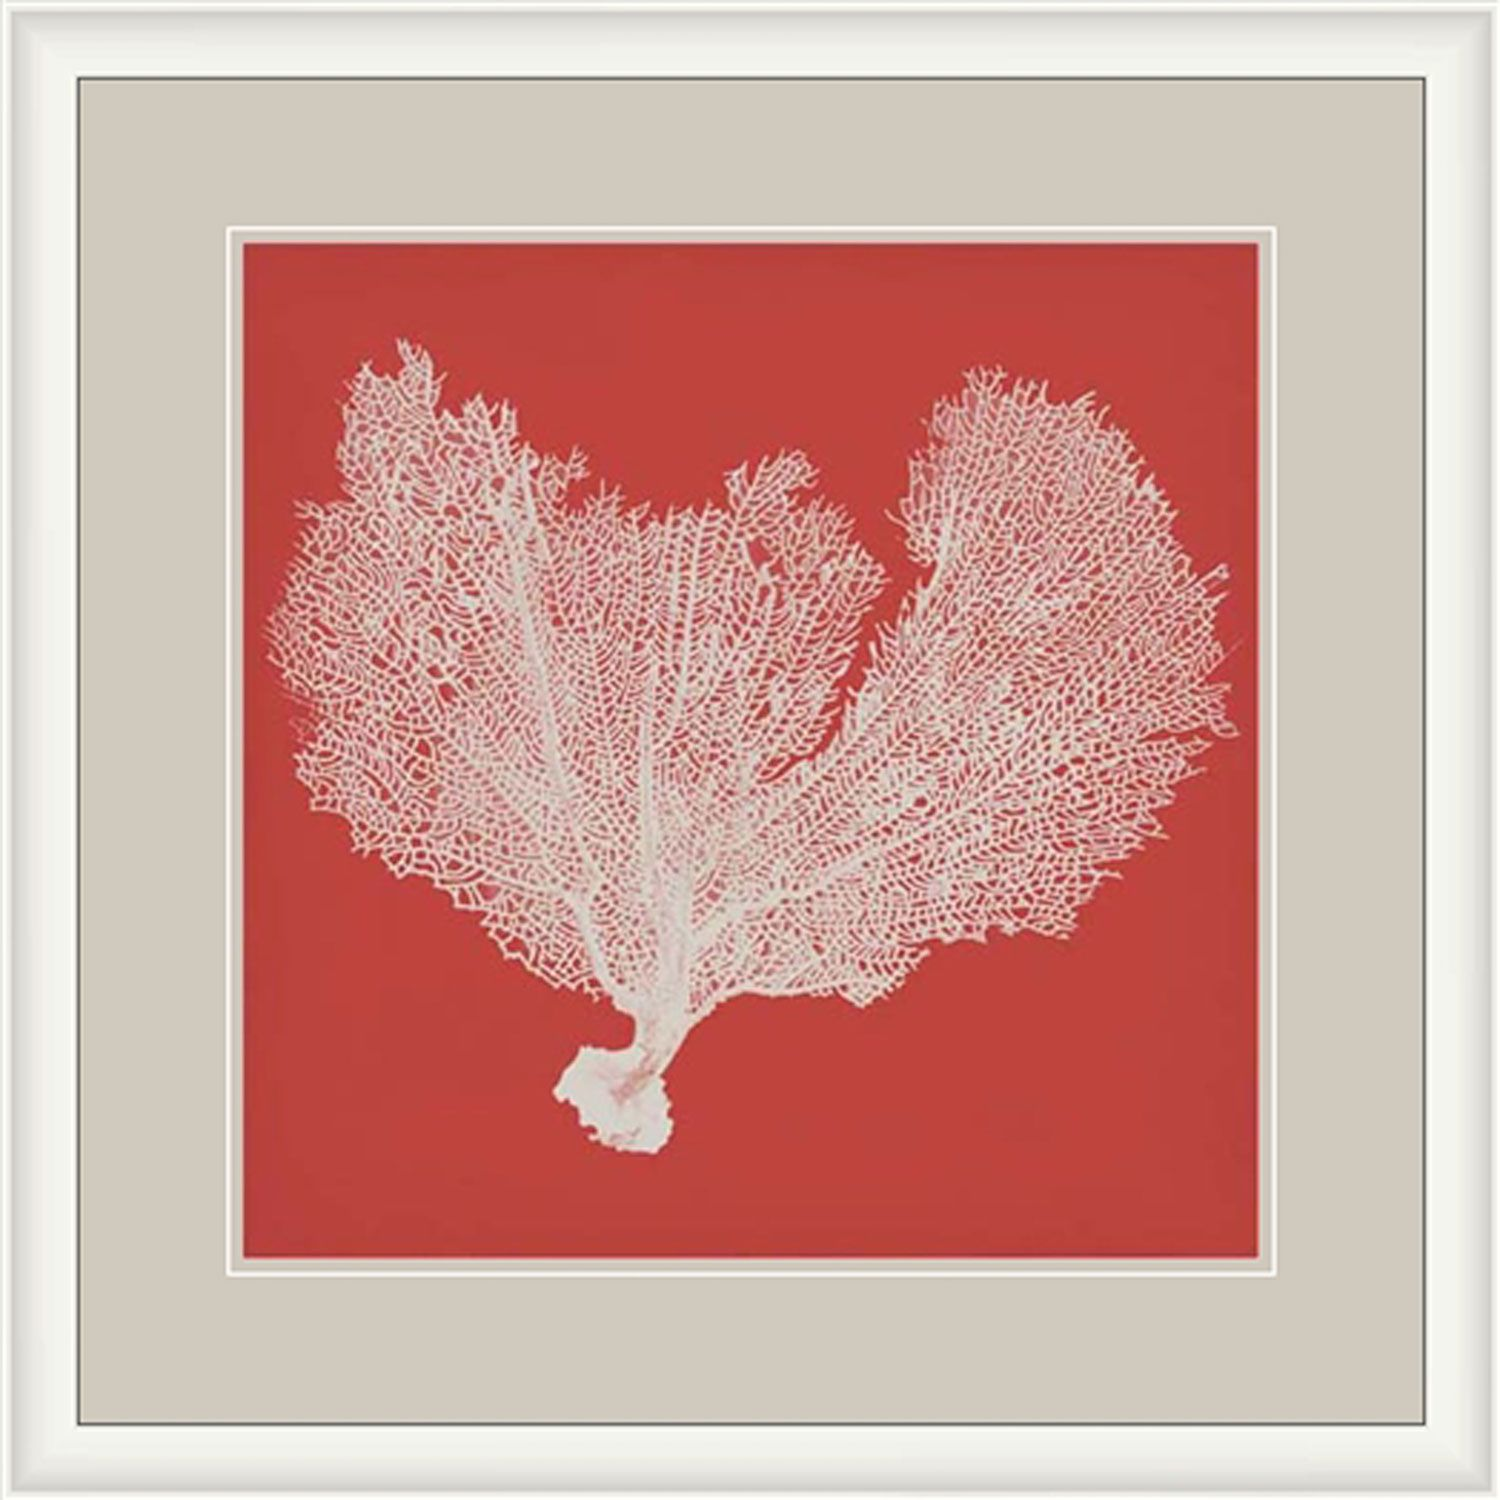 Surya sea fan on coral 29 x 29 inch print art walls coral and fans sea fan on coral 29 x 29 inch print surya wall art wall art home amipublicfo Images